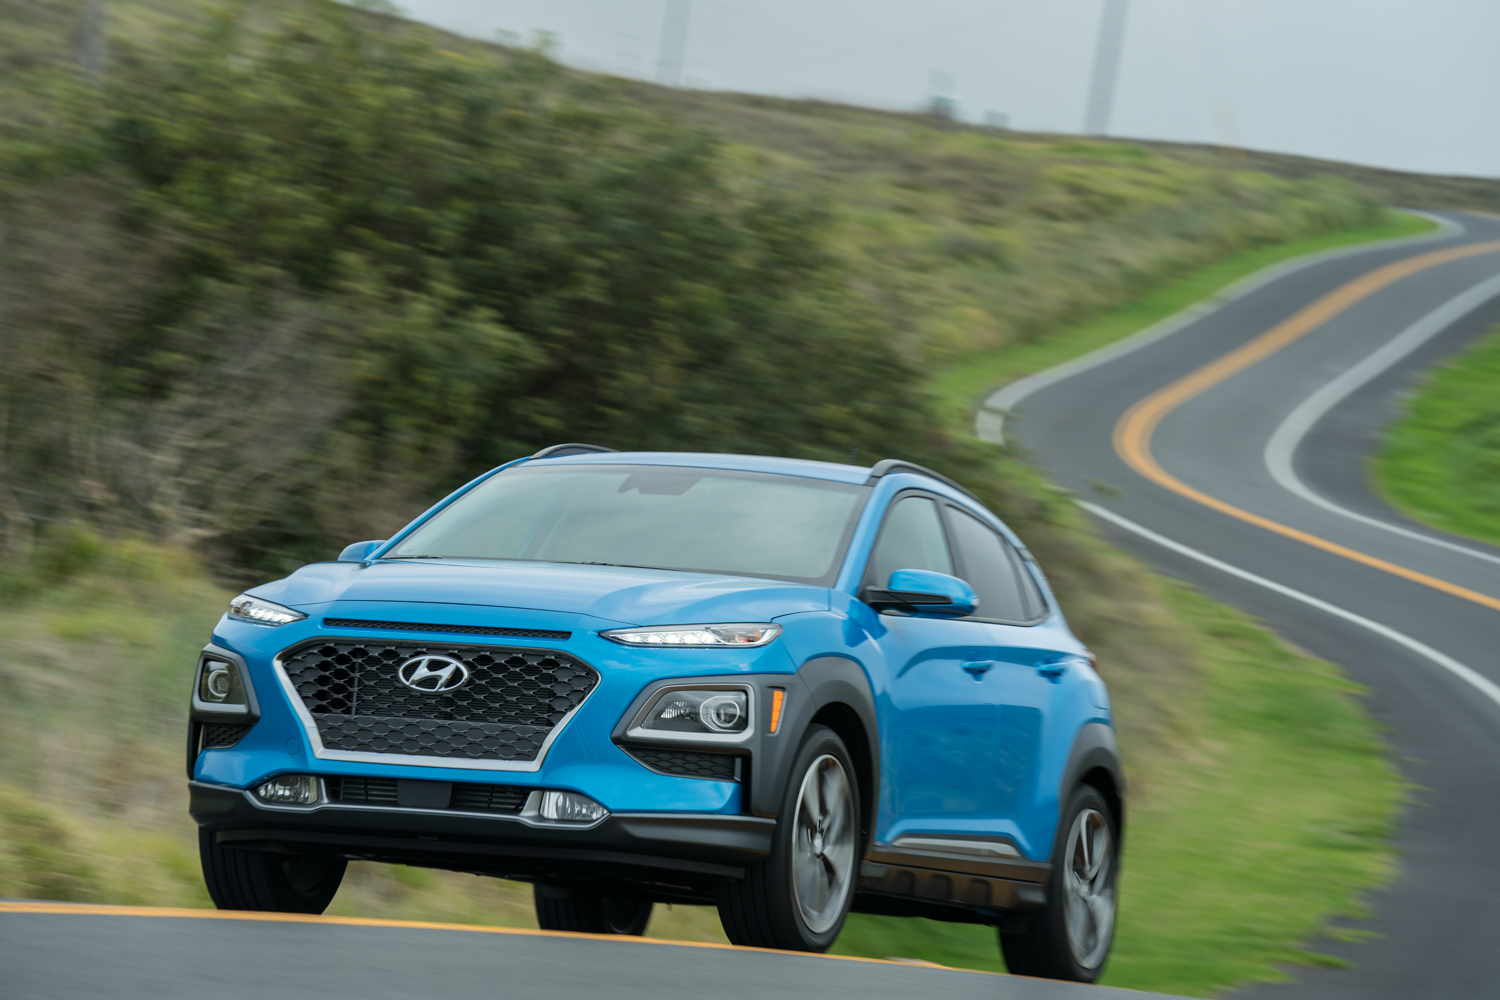 Hyundai Hat Trick: 3 2020 SUVs Score 5 Stars in Government Crash Tests